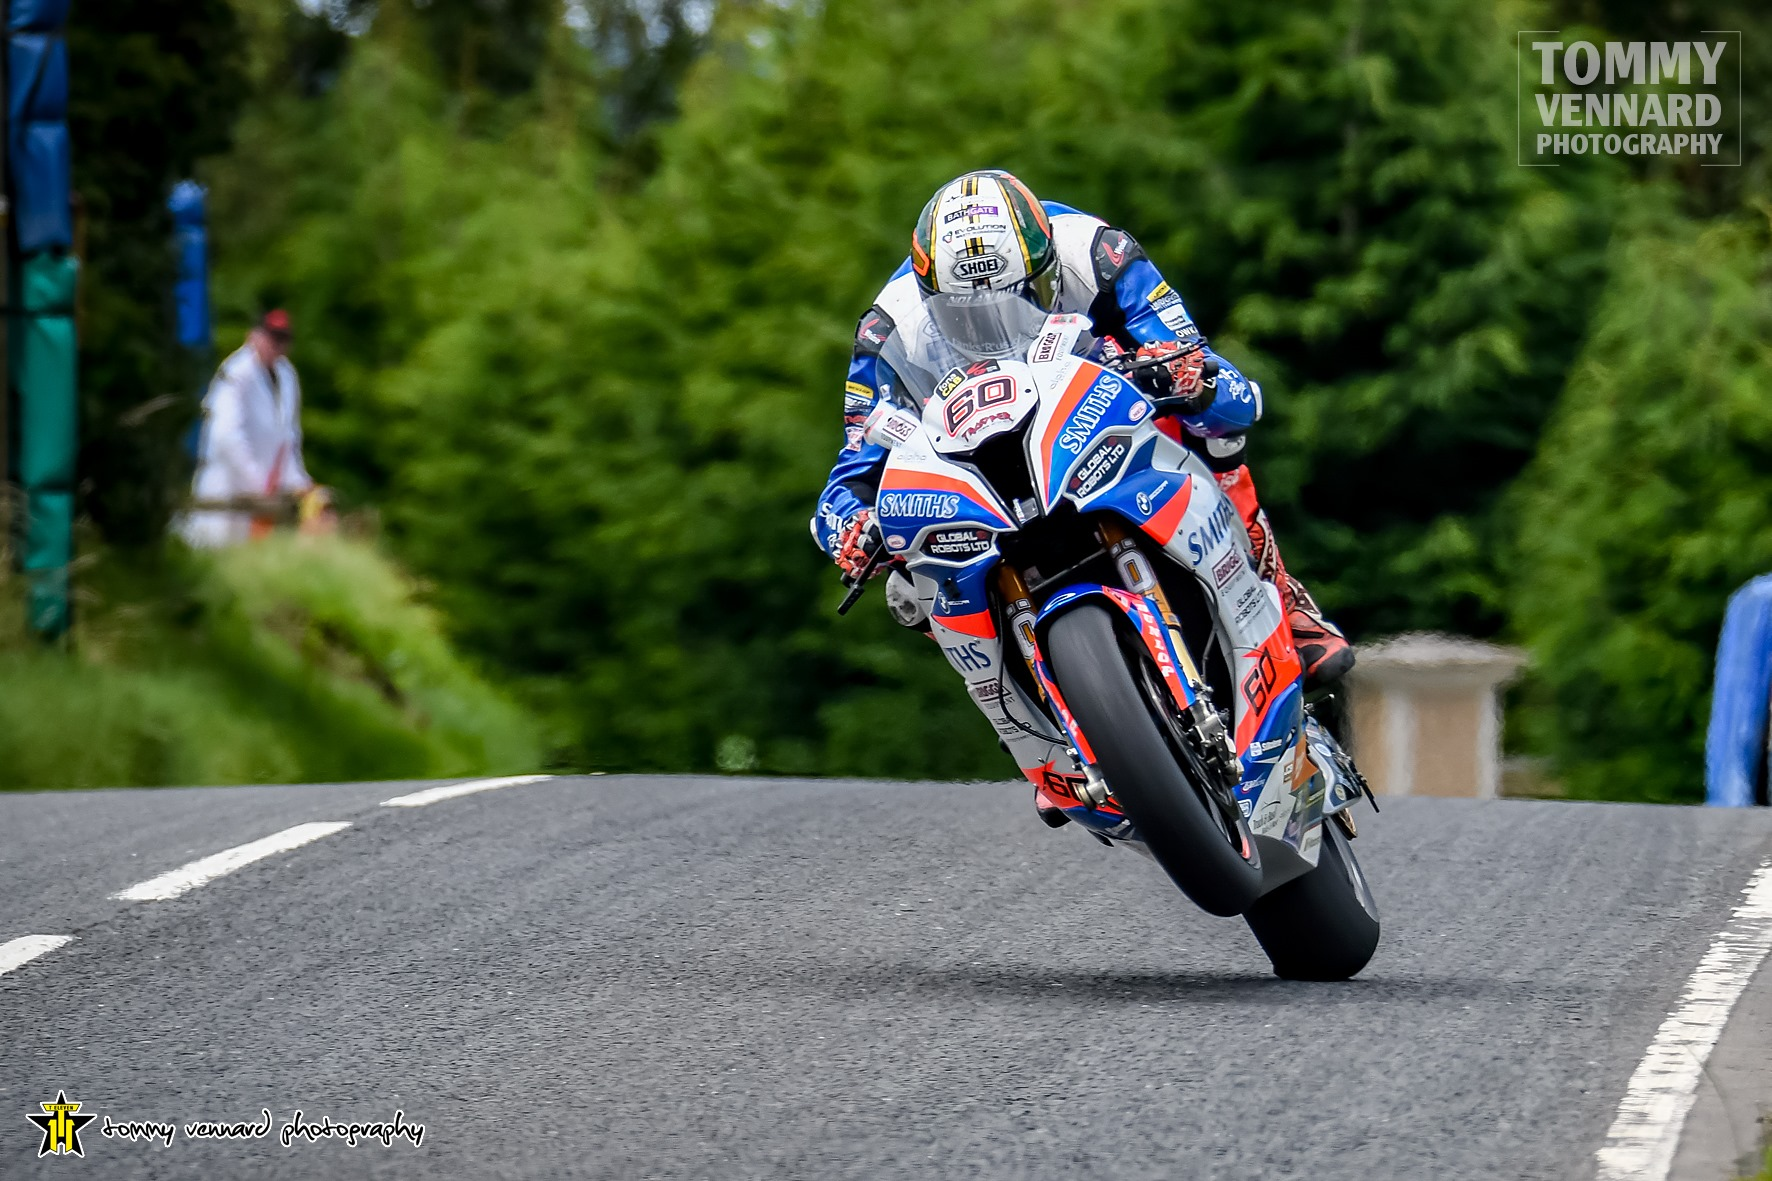 Road Racer's Adventures: Coming Up This Weekend